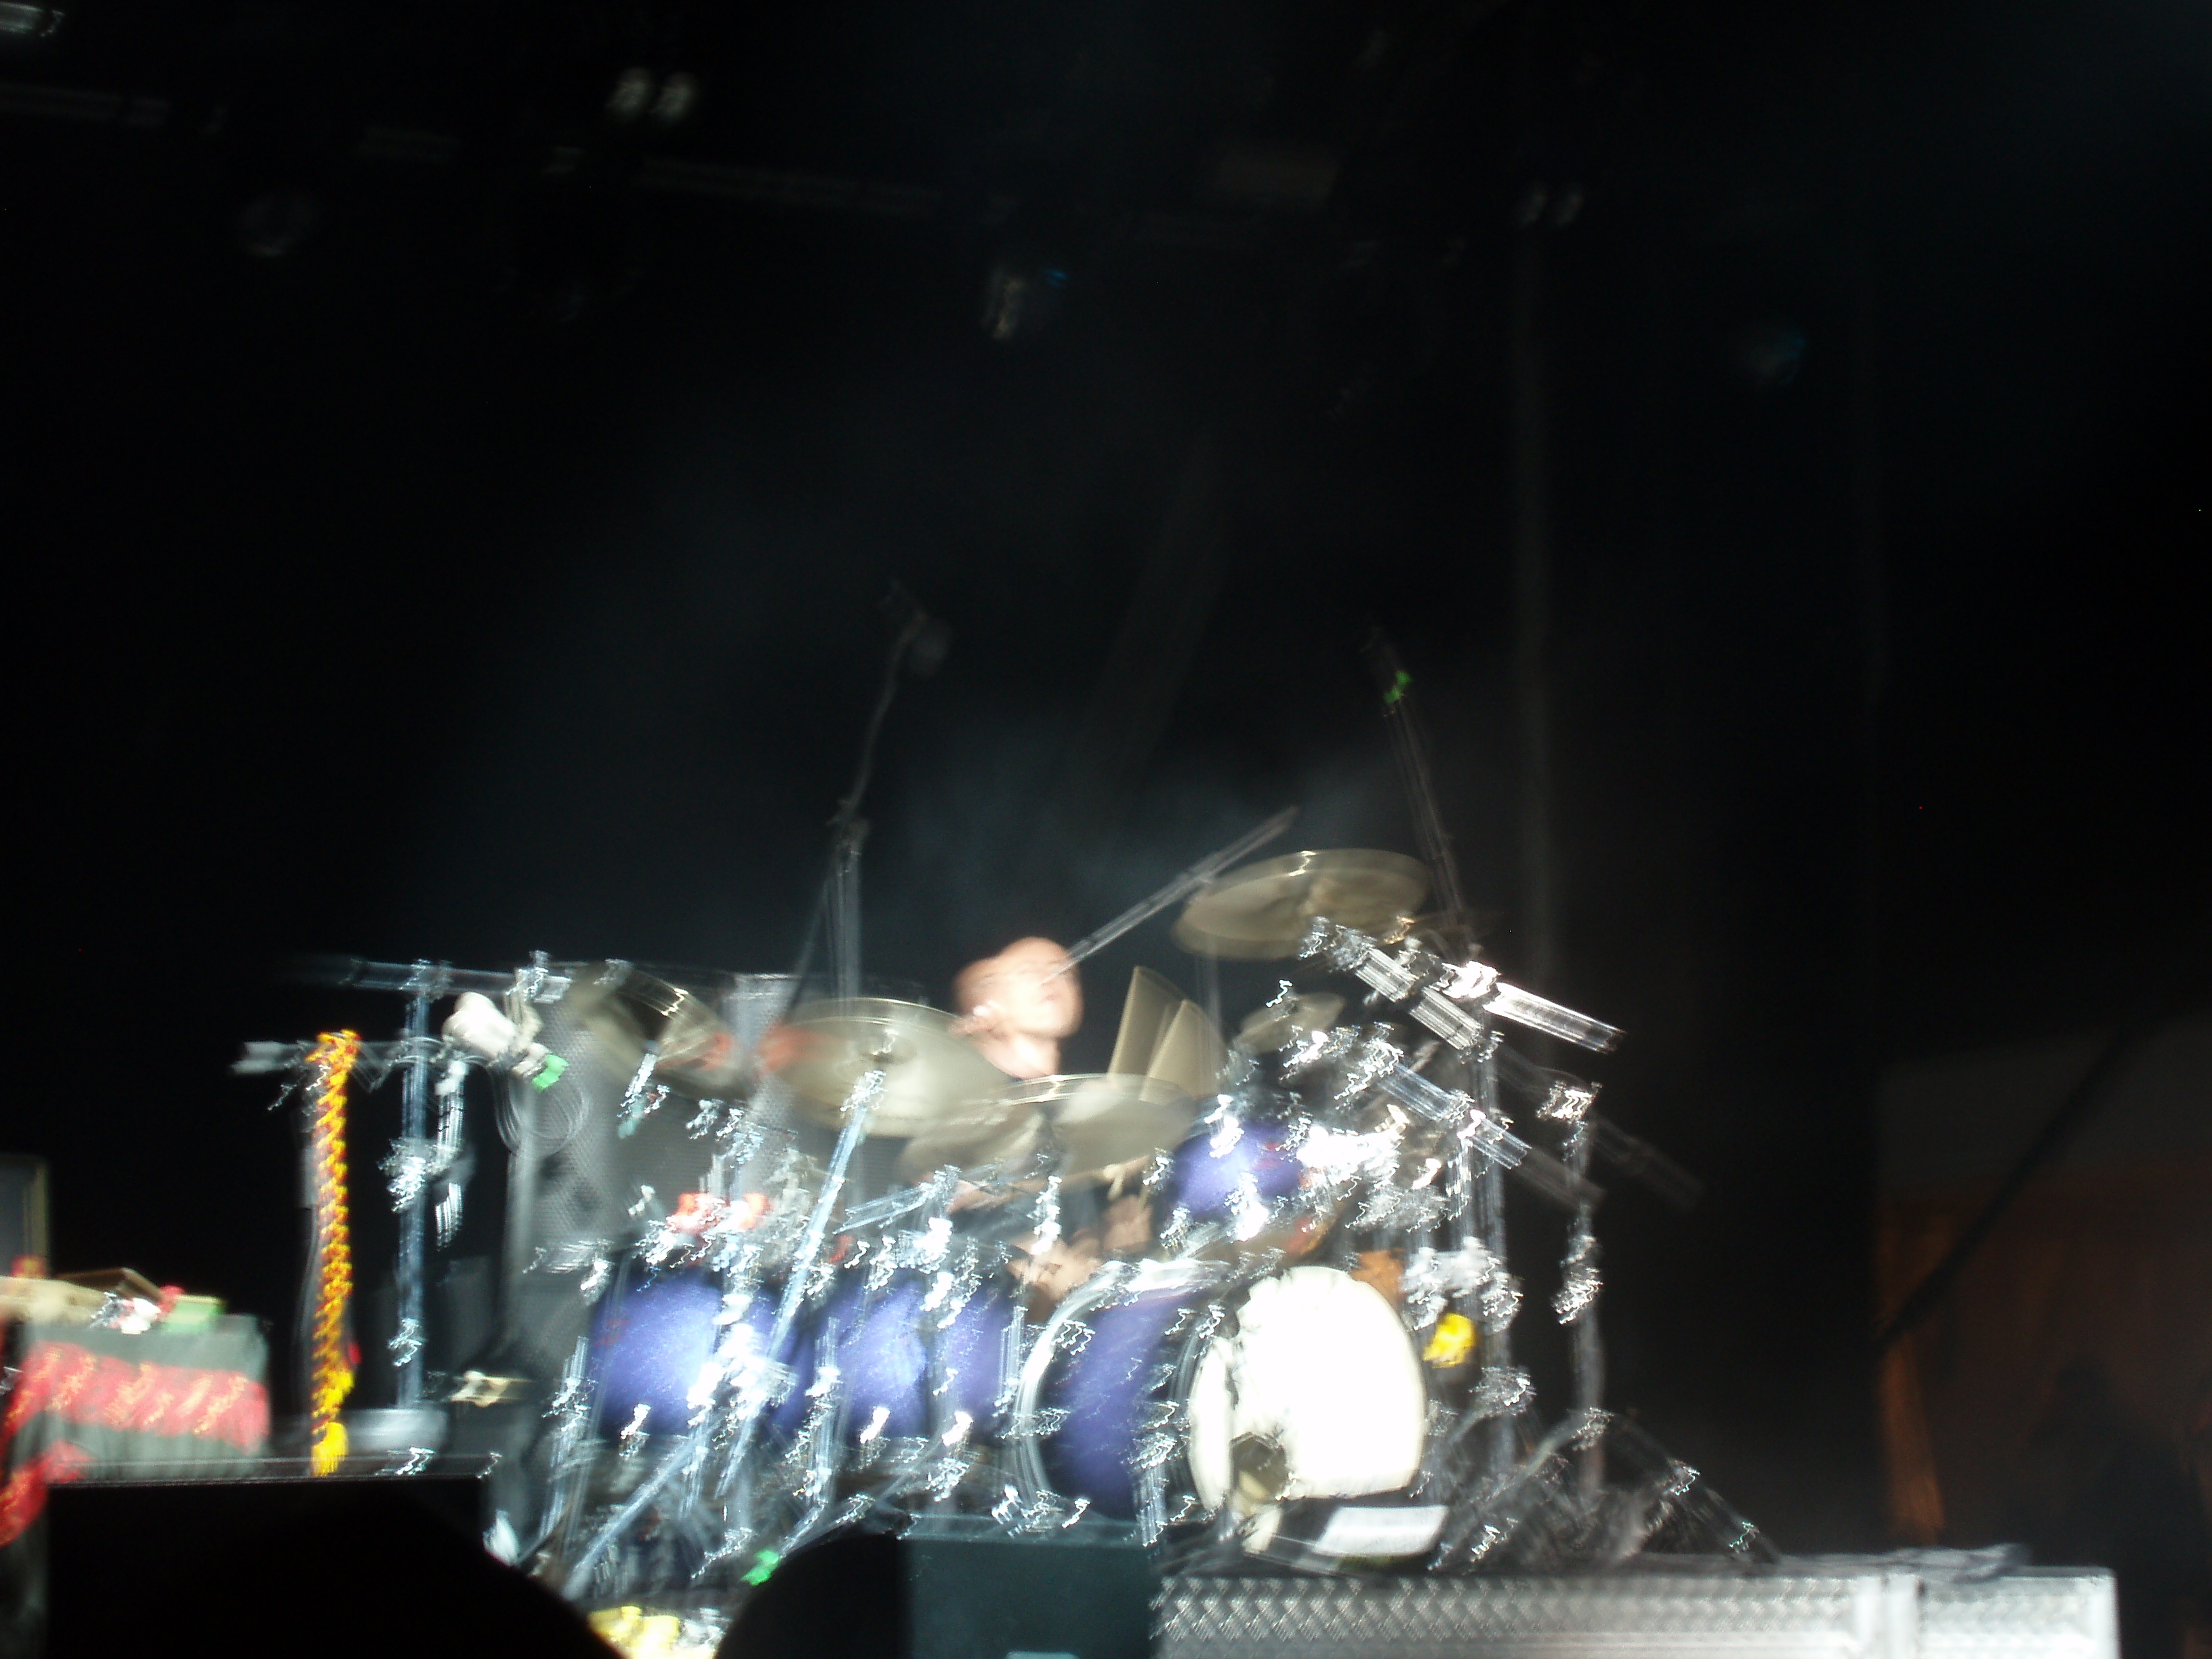 abstract blur of a drumset